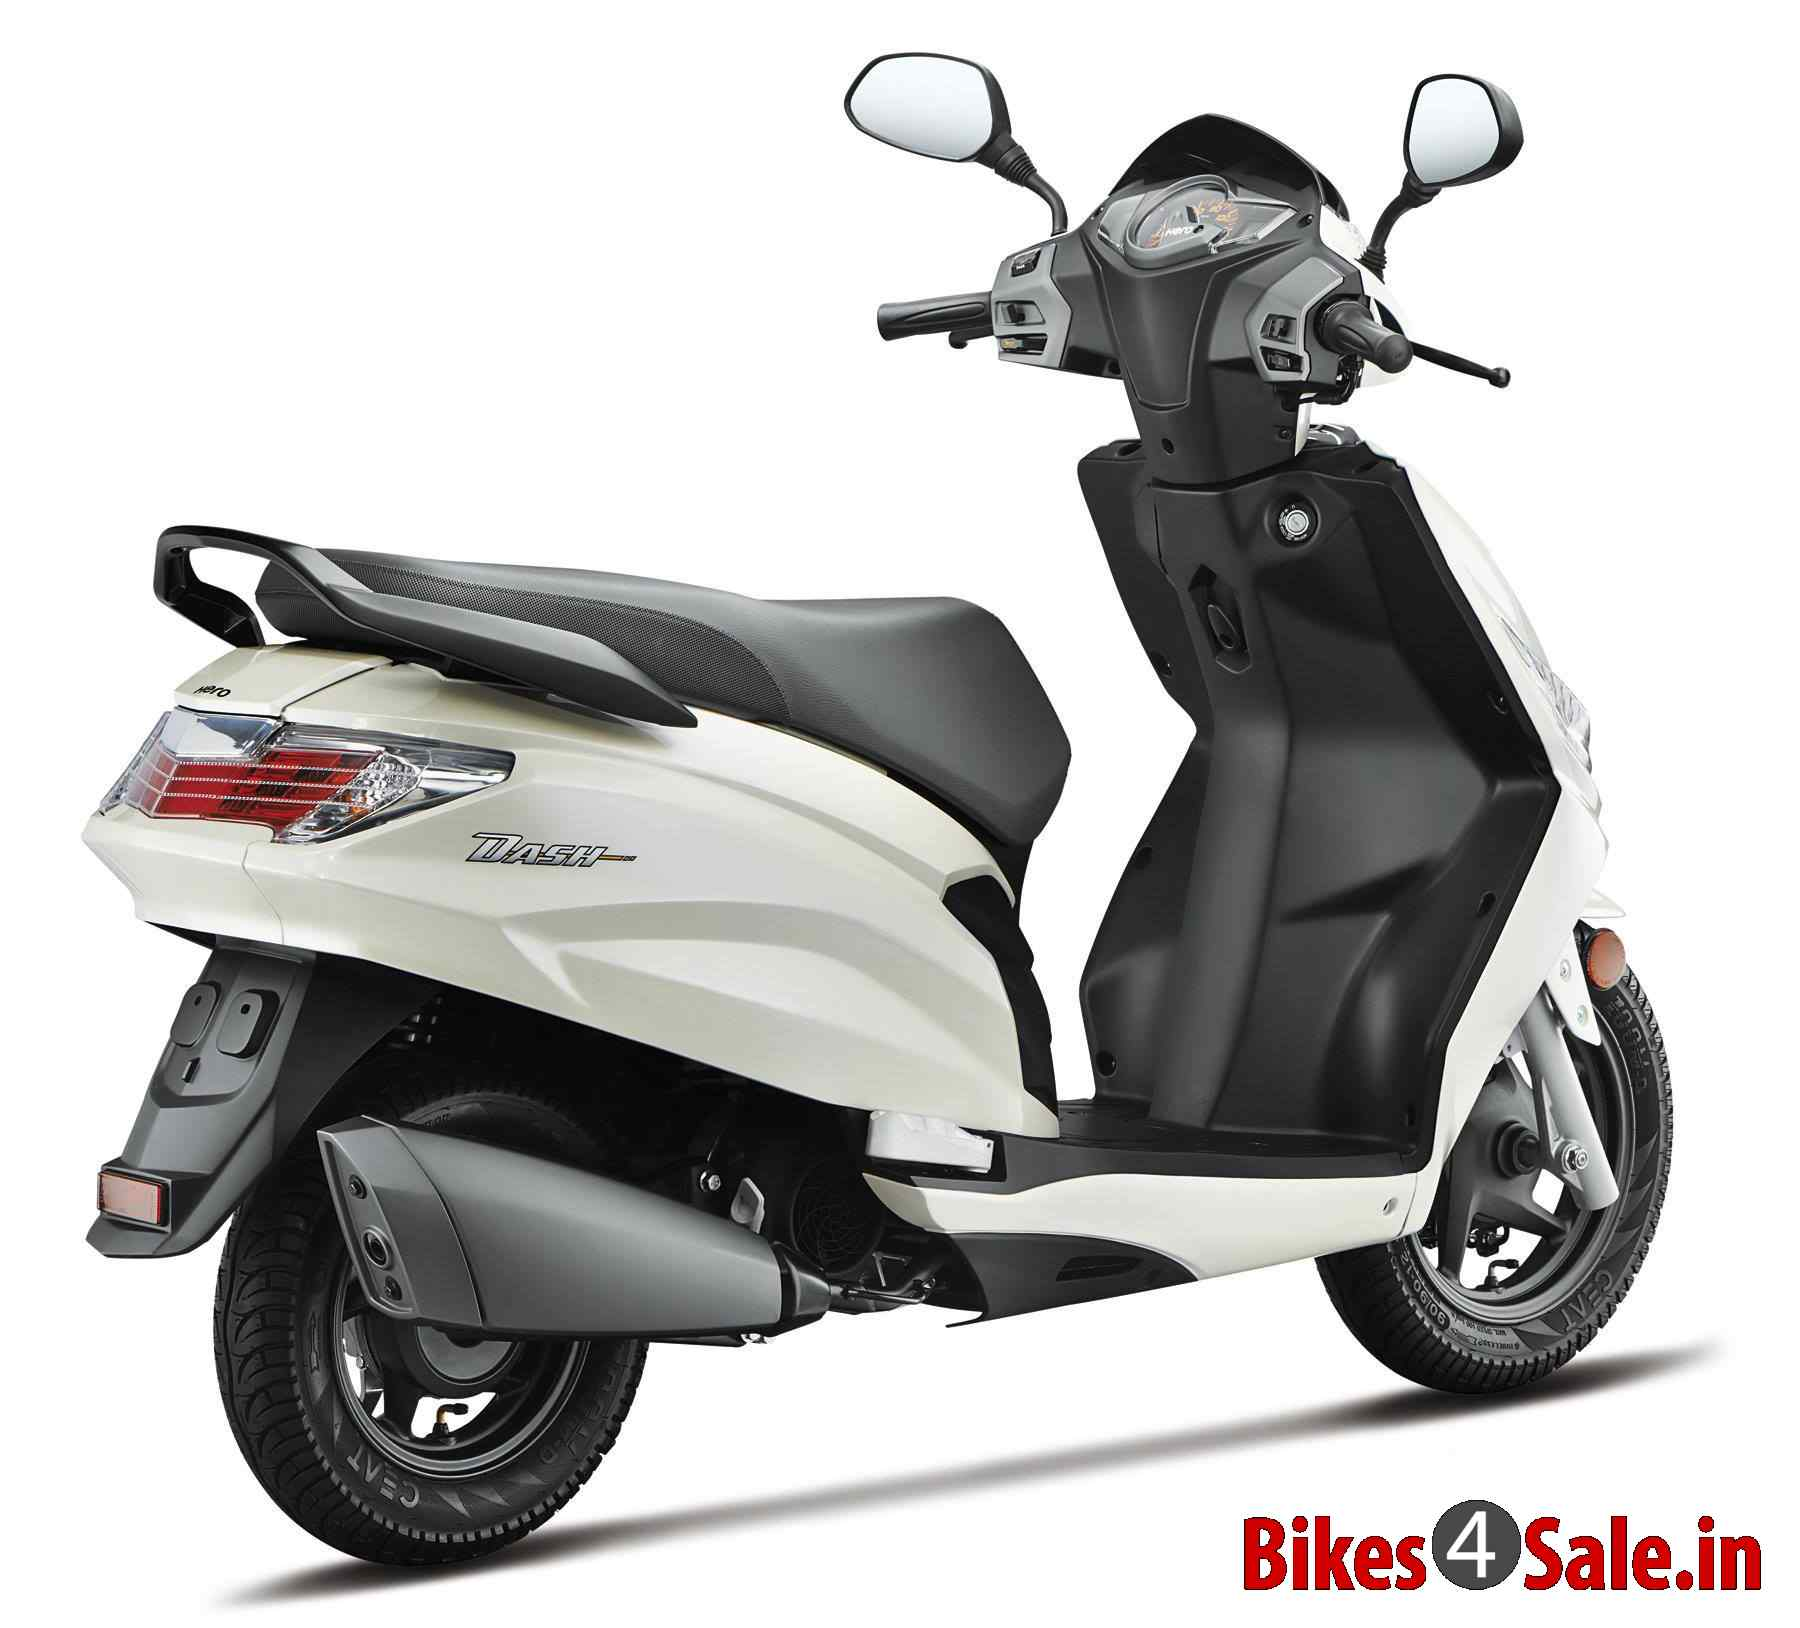 Planning My First Conversion Renault R4 54937 also Industrial Fans Cement Production Plants Forced Draft Fans For Kiln Burners in addition Yamaha Ttx X Force 115 Cc Detail further 221994651859 together with Vespa 20ET2 2050 2001. on electric forced air